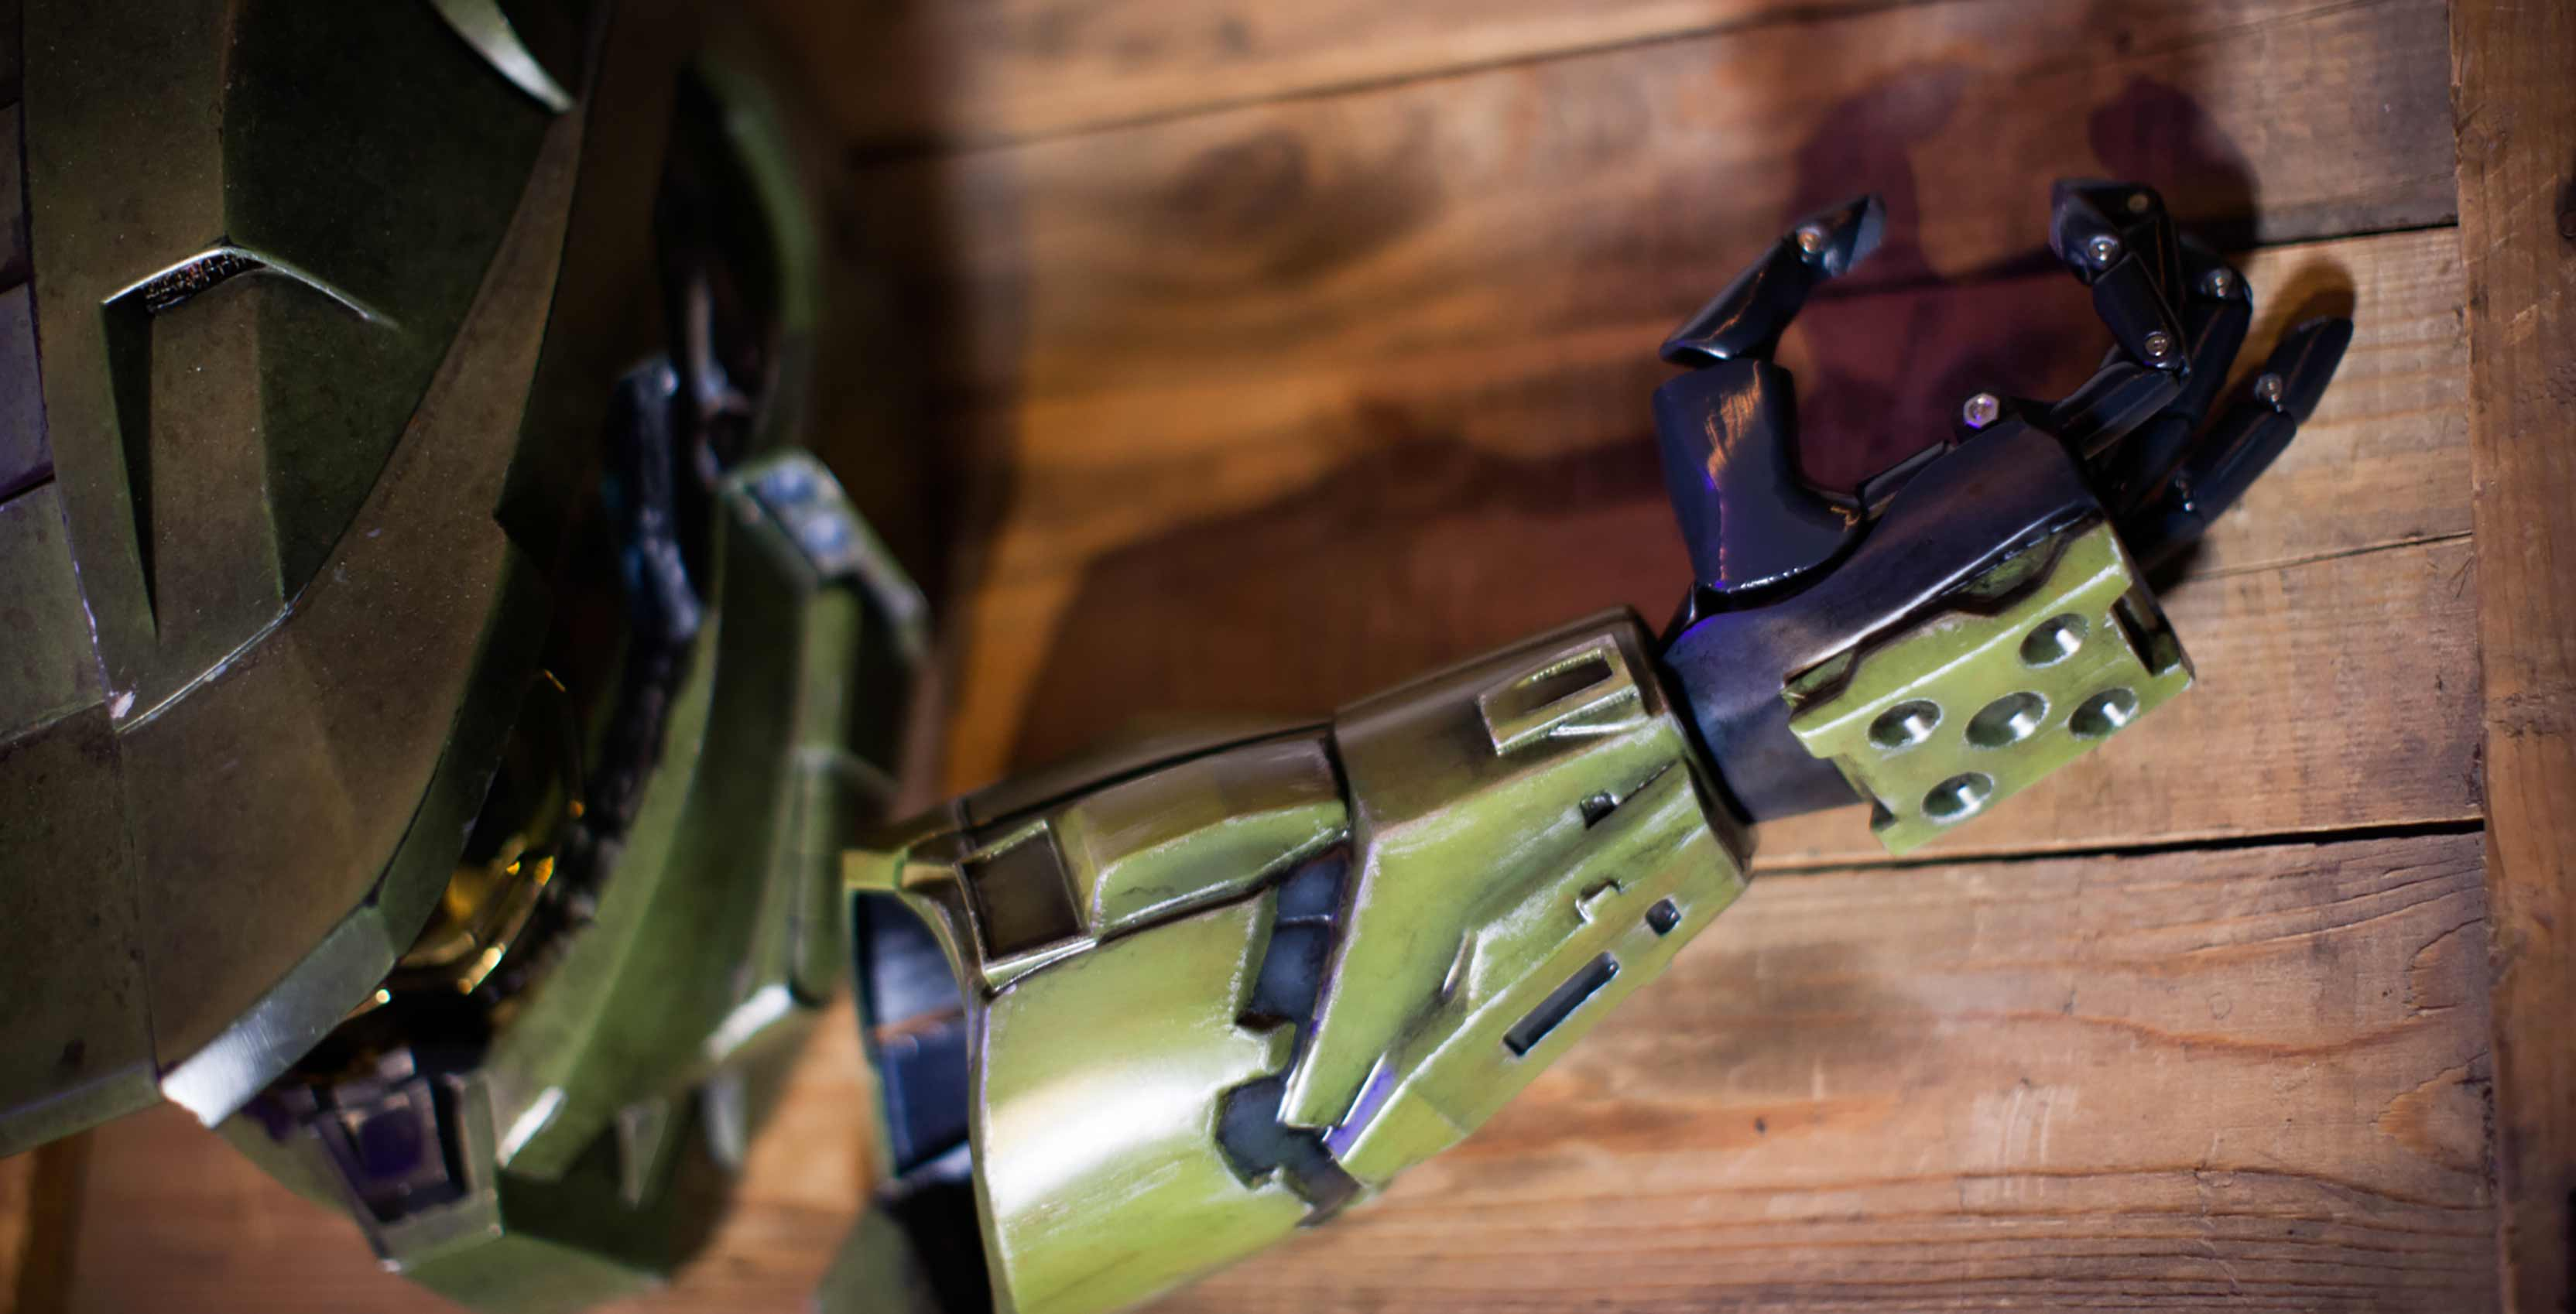 Halo-themed prosthetics help deserving kids channel their inner Master Chief